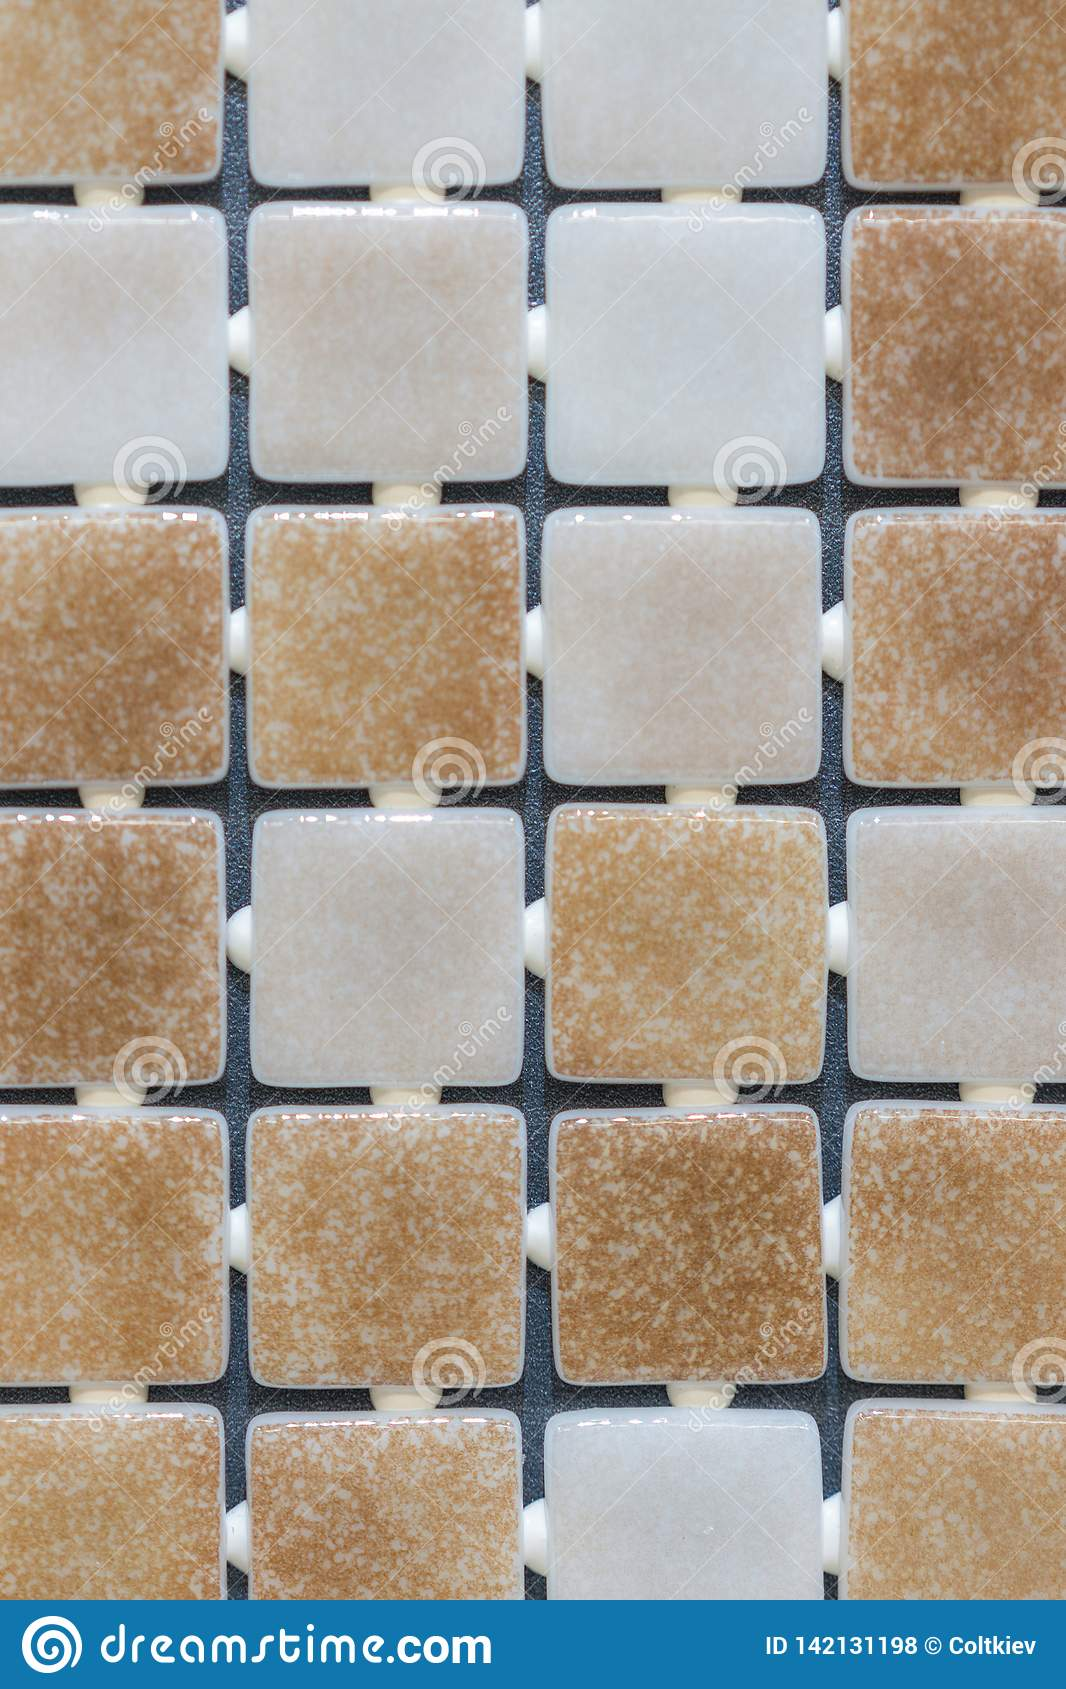 Beige Abstract Mosaic Background Abstract Square Pixel